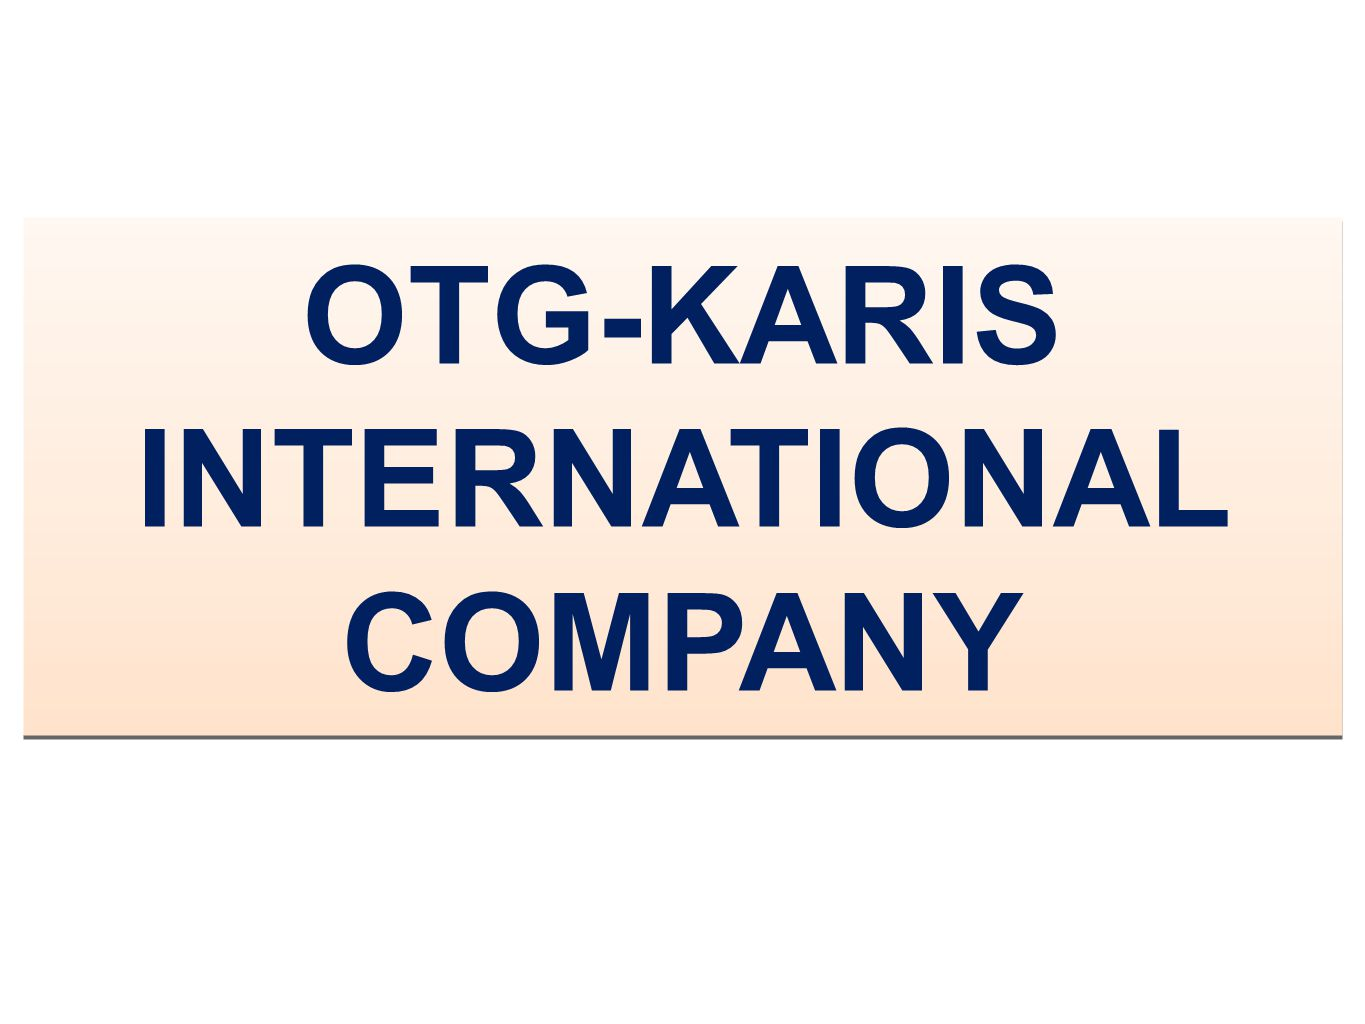 OTG-KARIS INTERNATIONAL COMPANY